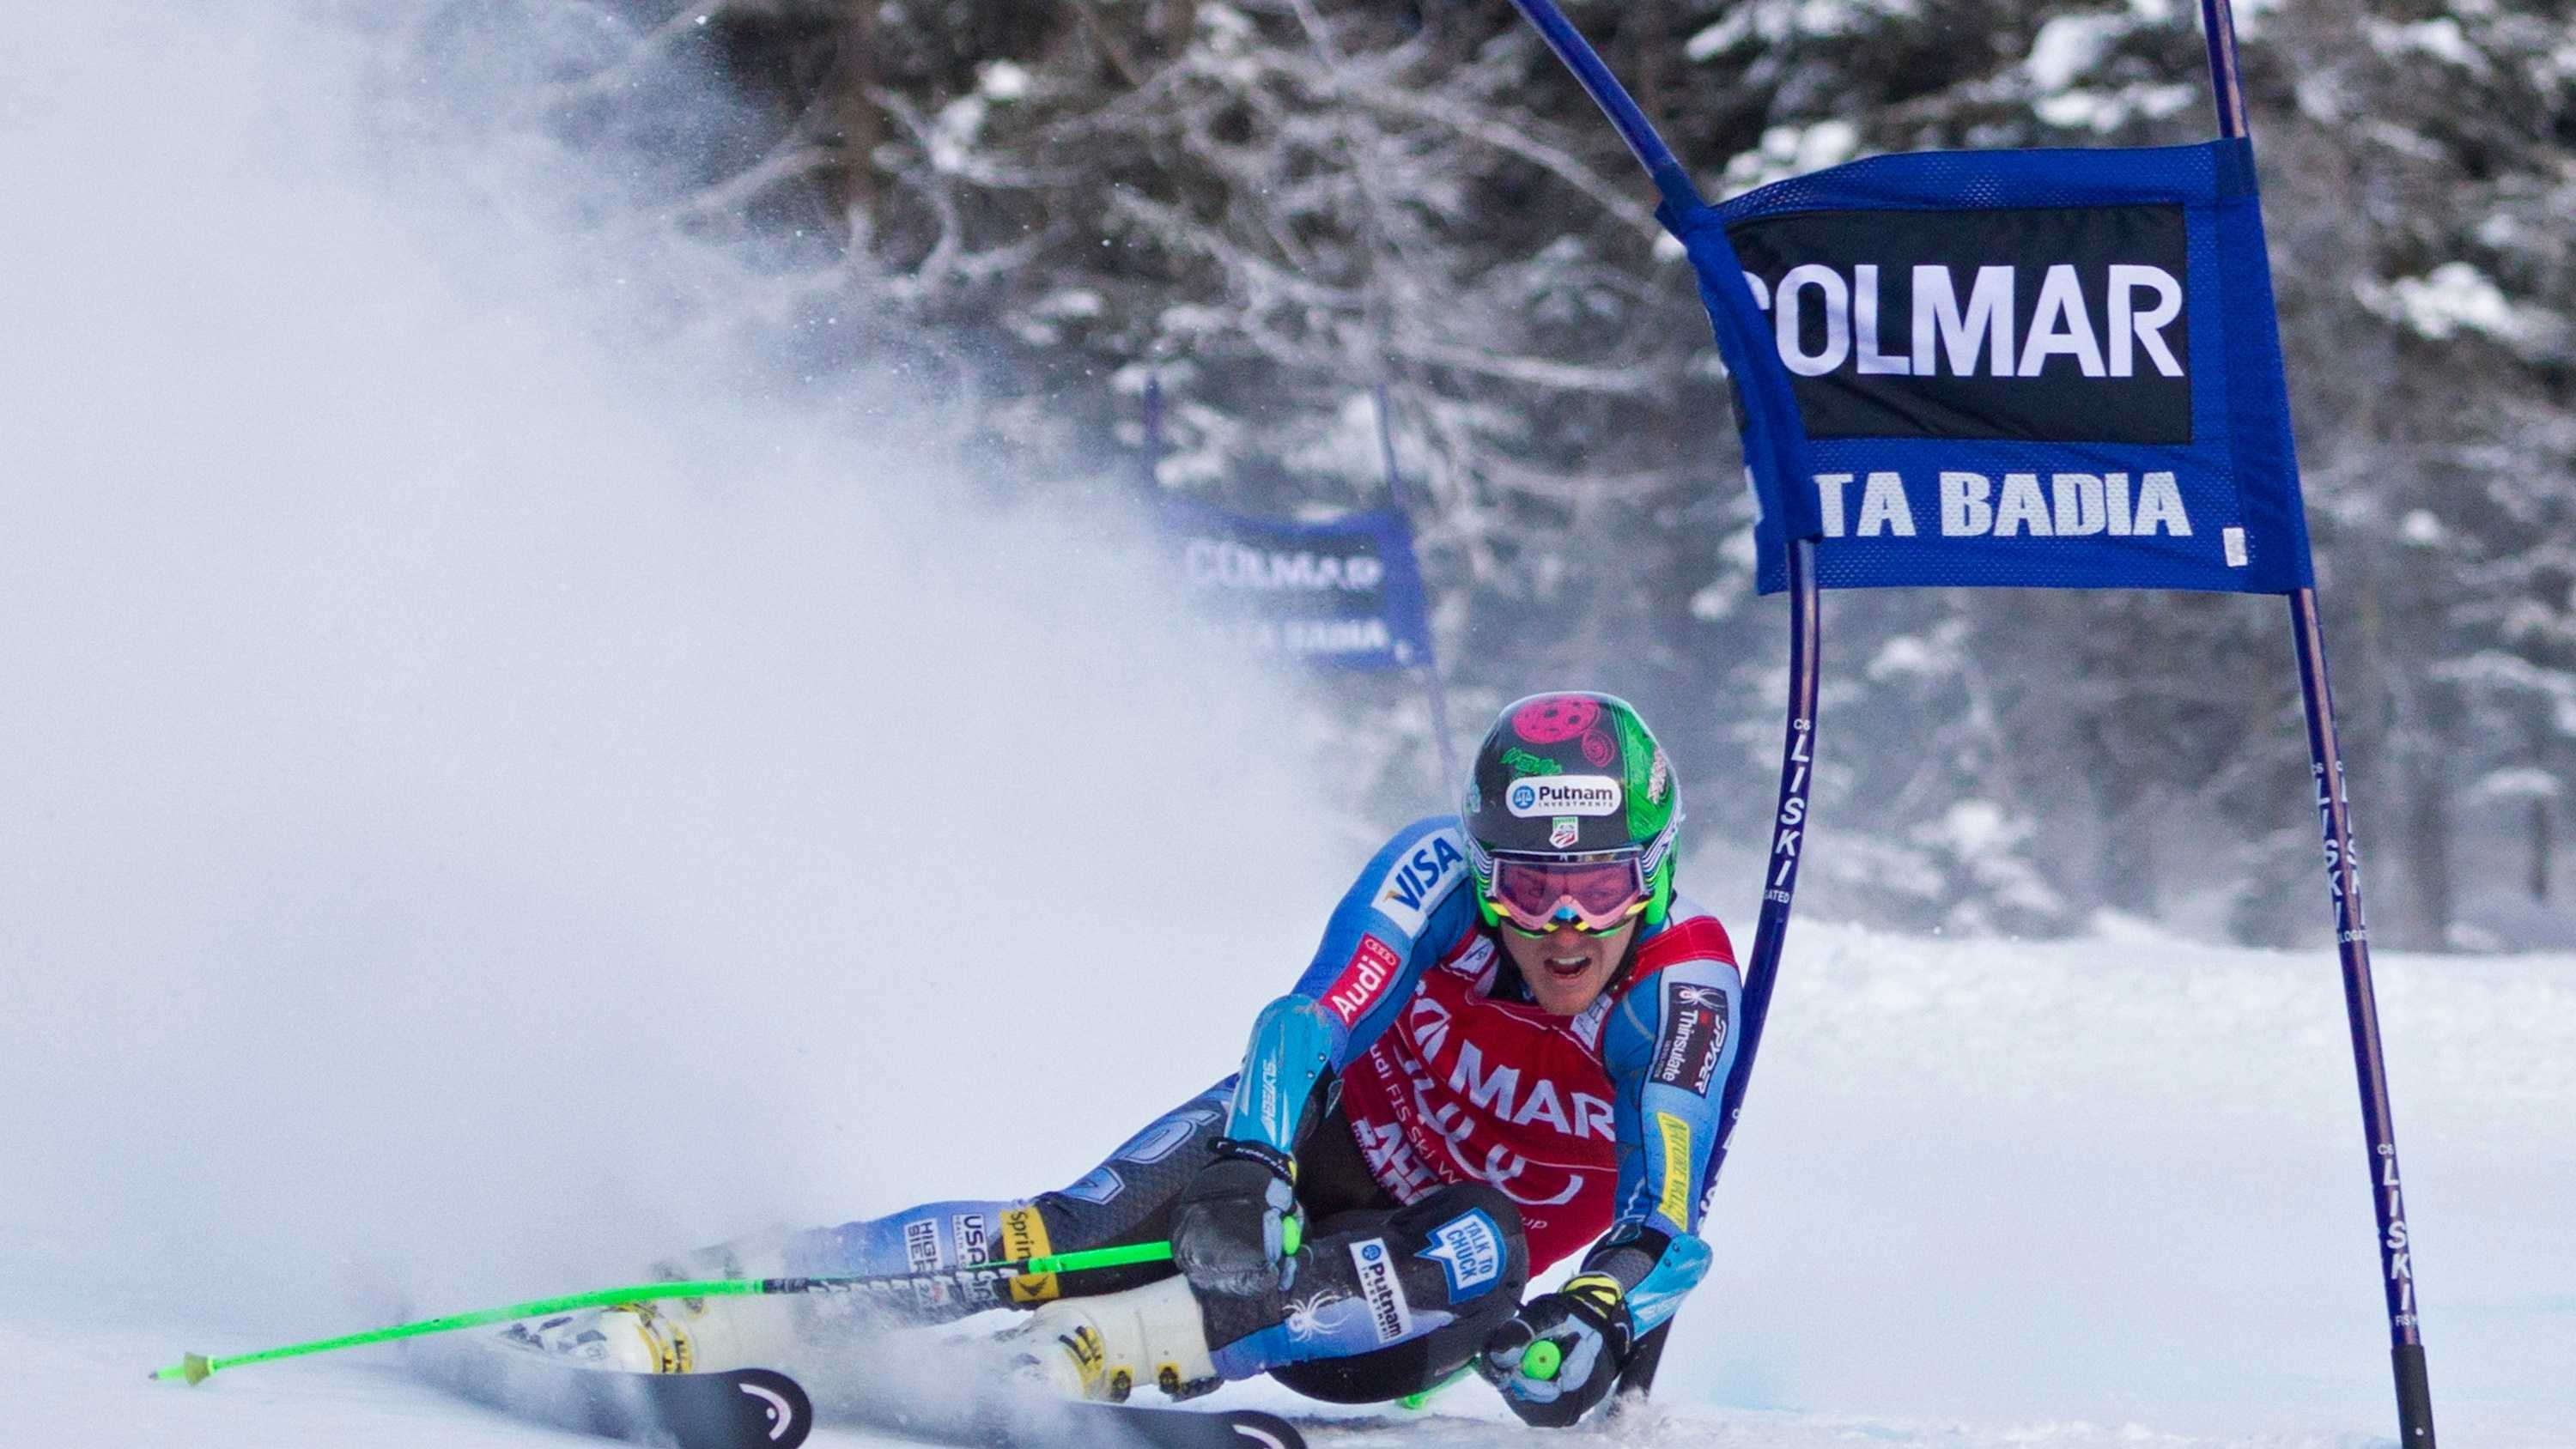 Ted Ligety races down the course during the Alpine FIS Ski World Cup giant slalom race on Feb. 24 in Garmisch Partenkirchen, Germany.